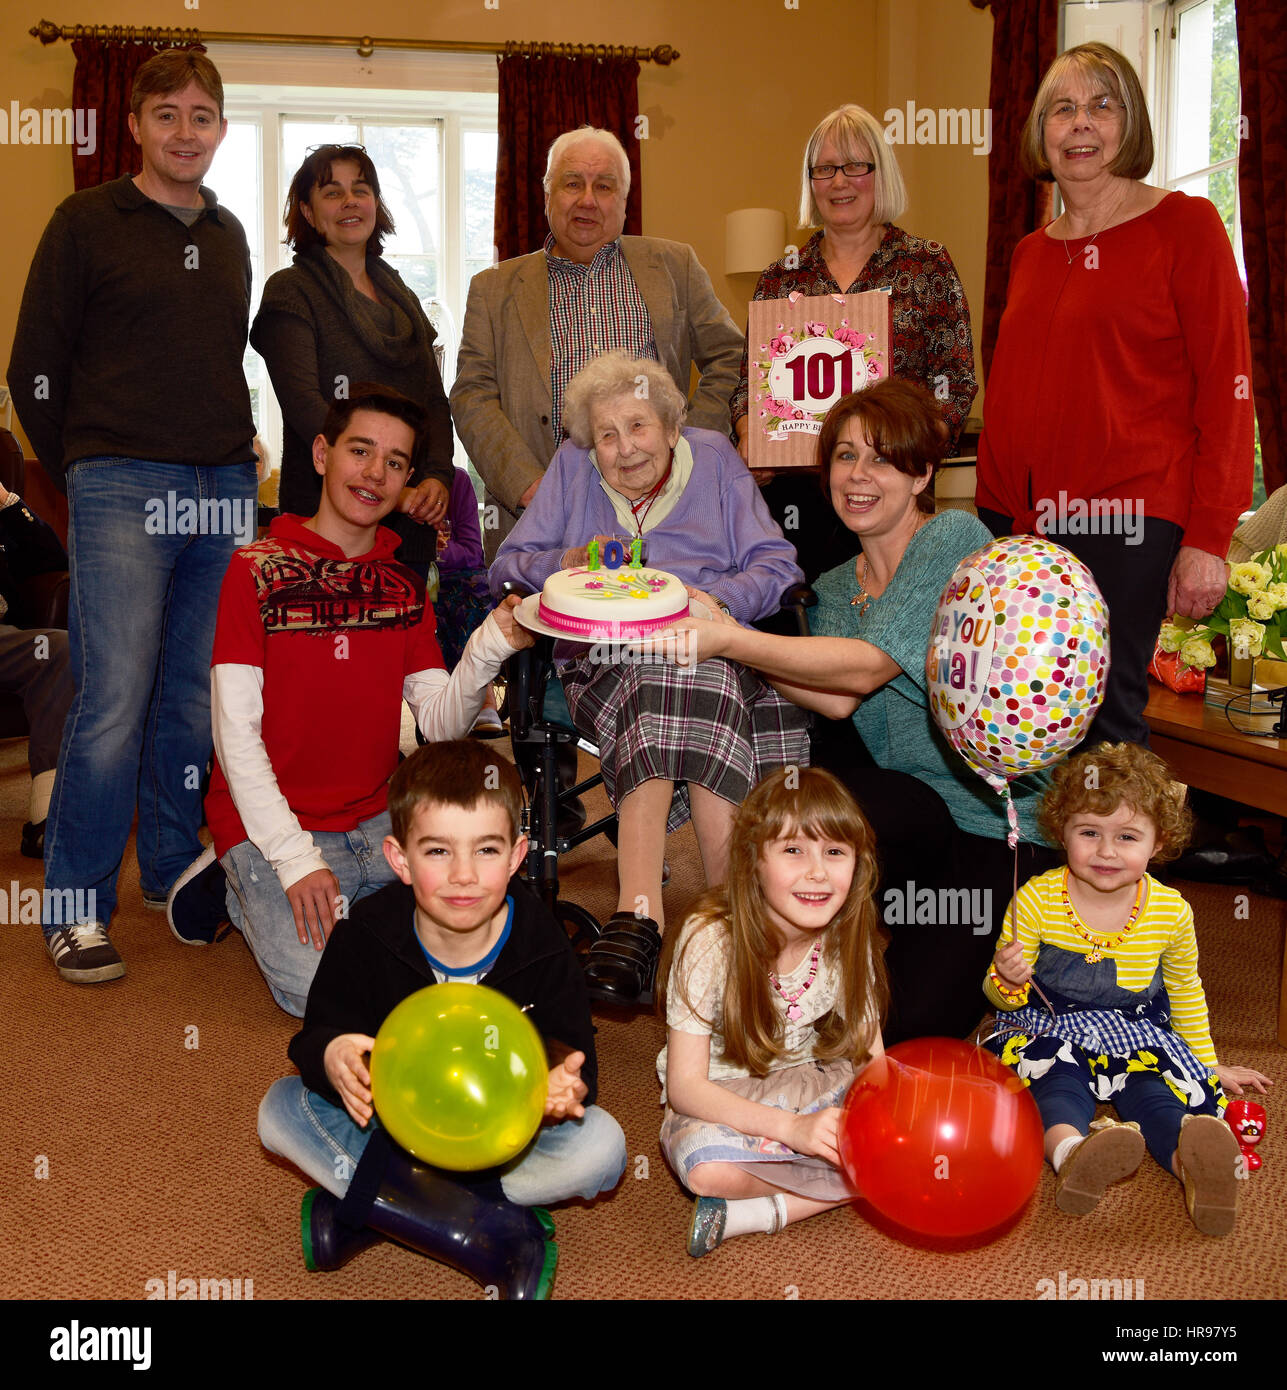 Elderly woman in wheelchair celebrating her 101st birthday surrounded by her extended family and staff members in - Stock Image